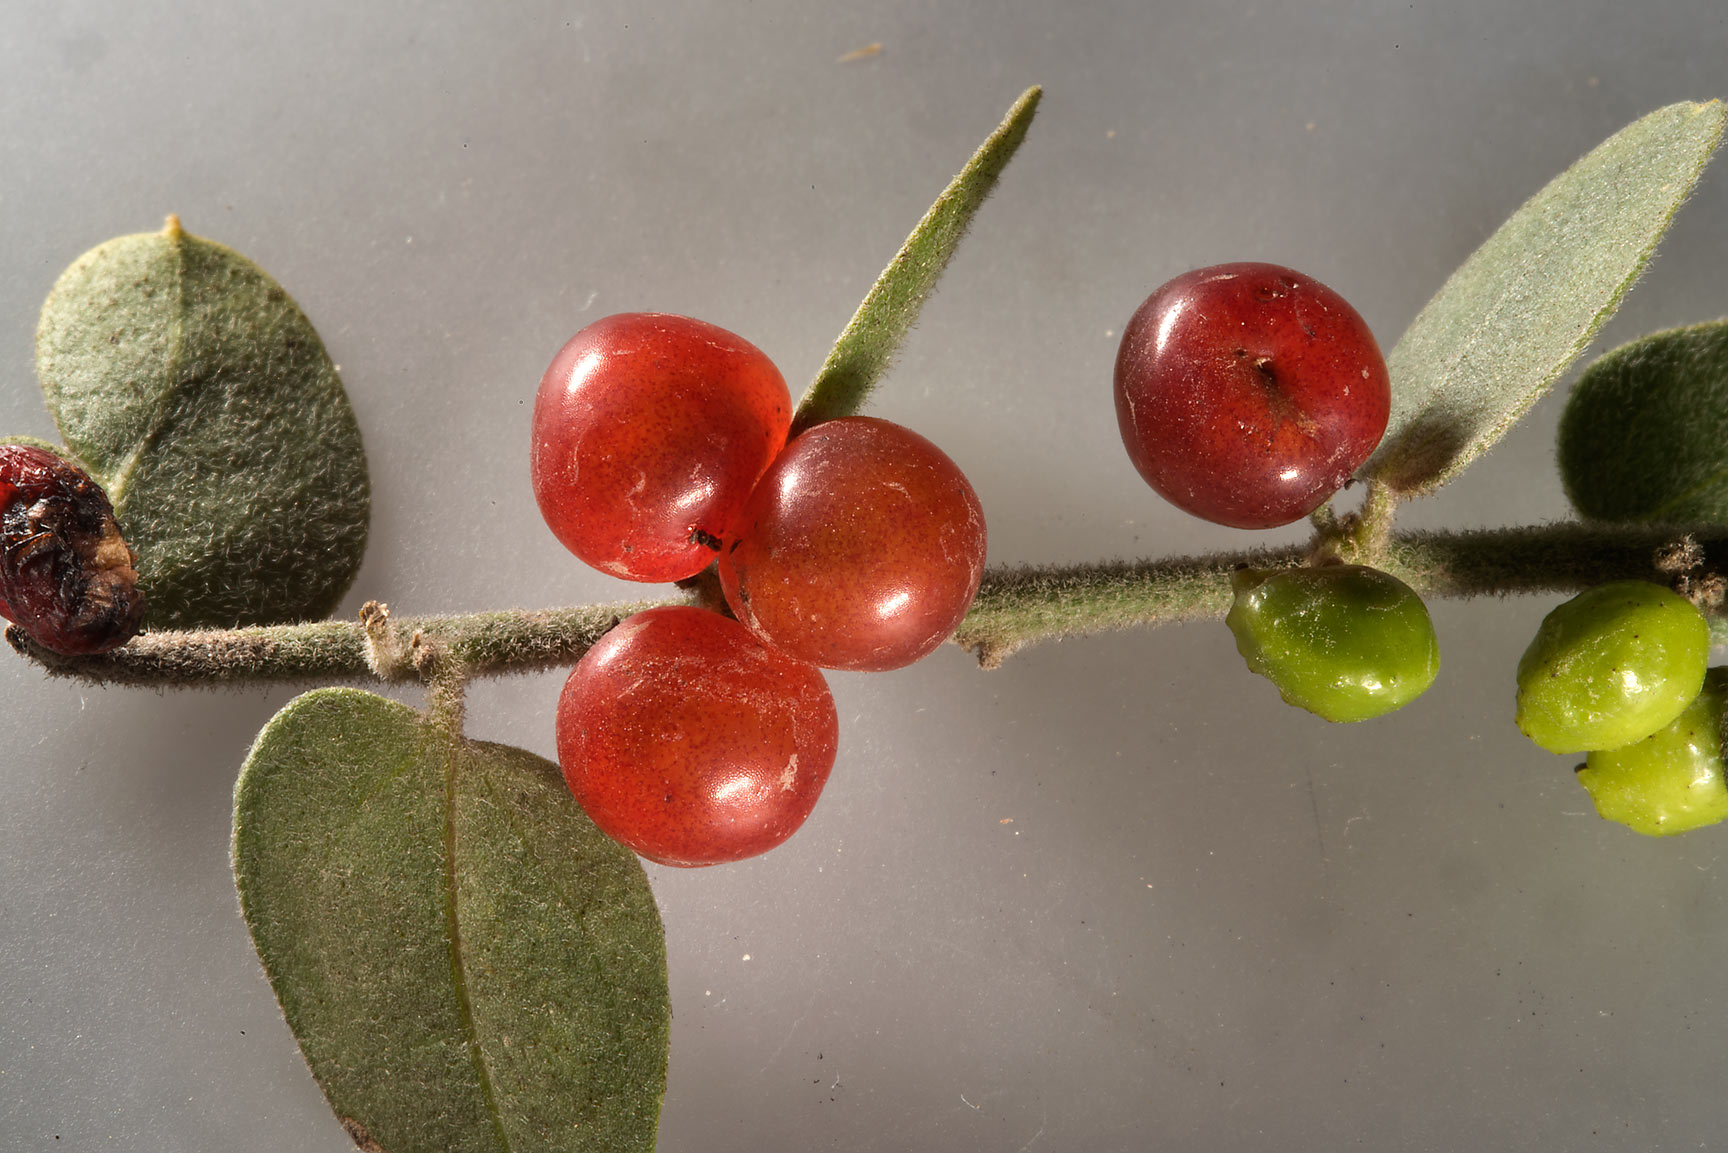 Red berries and green galls on Cocculus pendulus...from Khawzan to Al-Jumayliyah. Qatar